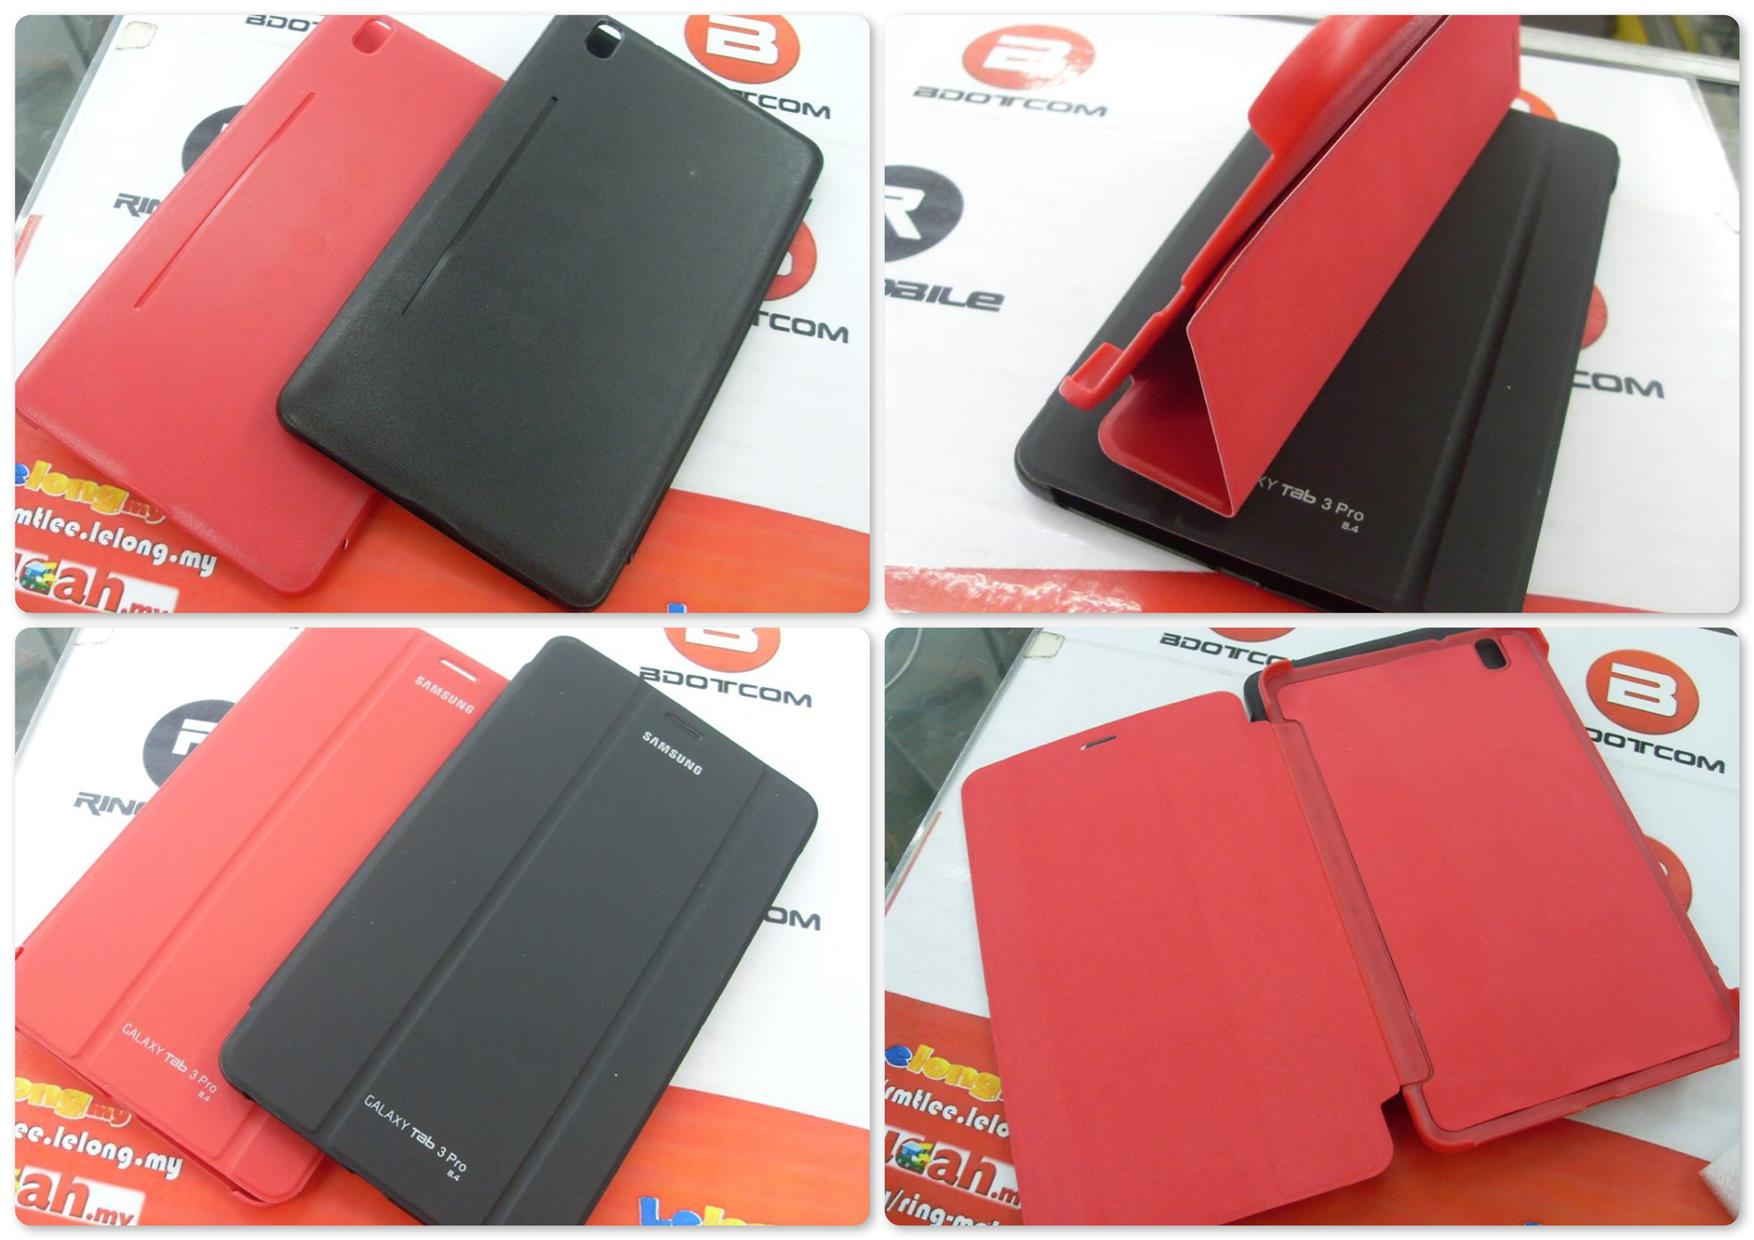 Bdotcom = Samsng Galaxy Tab PRO 8.4 Book Cover Case with Stand